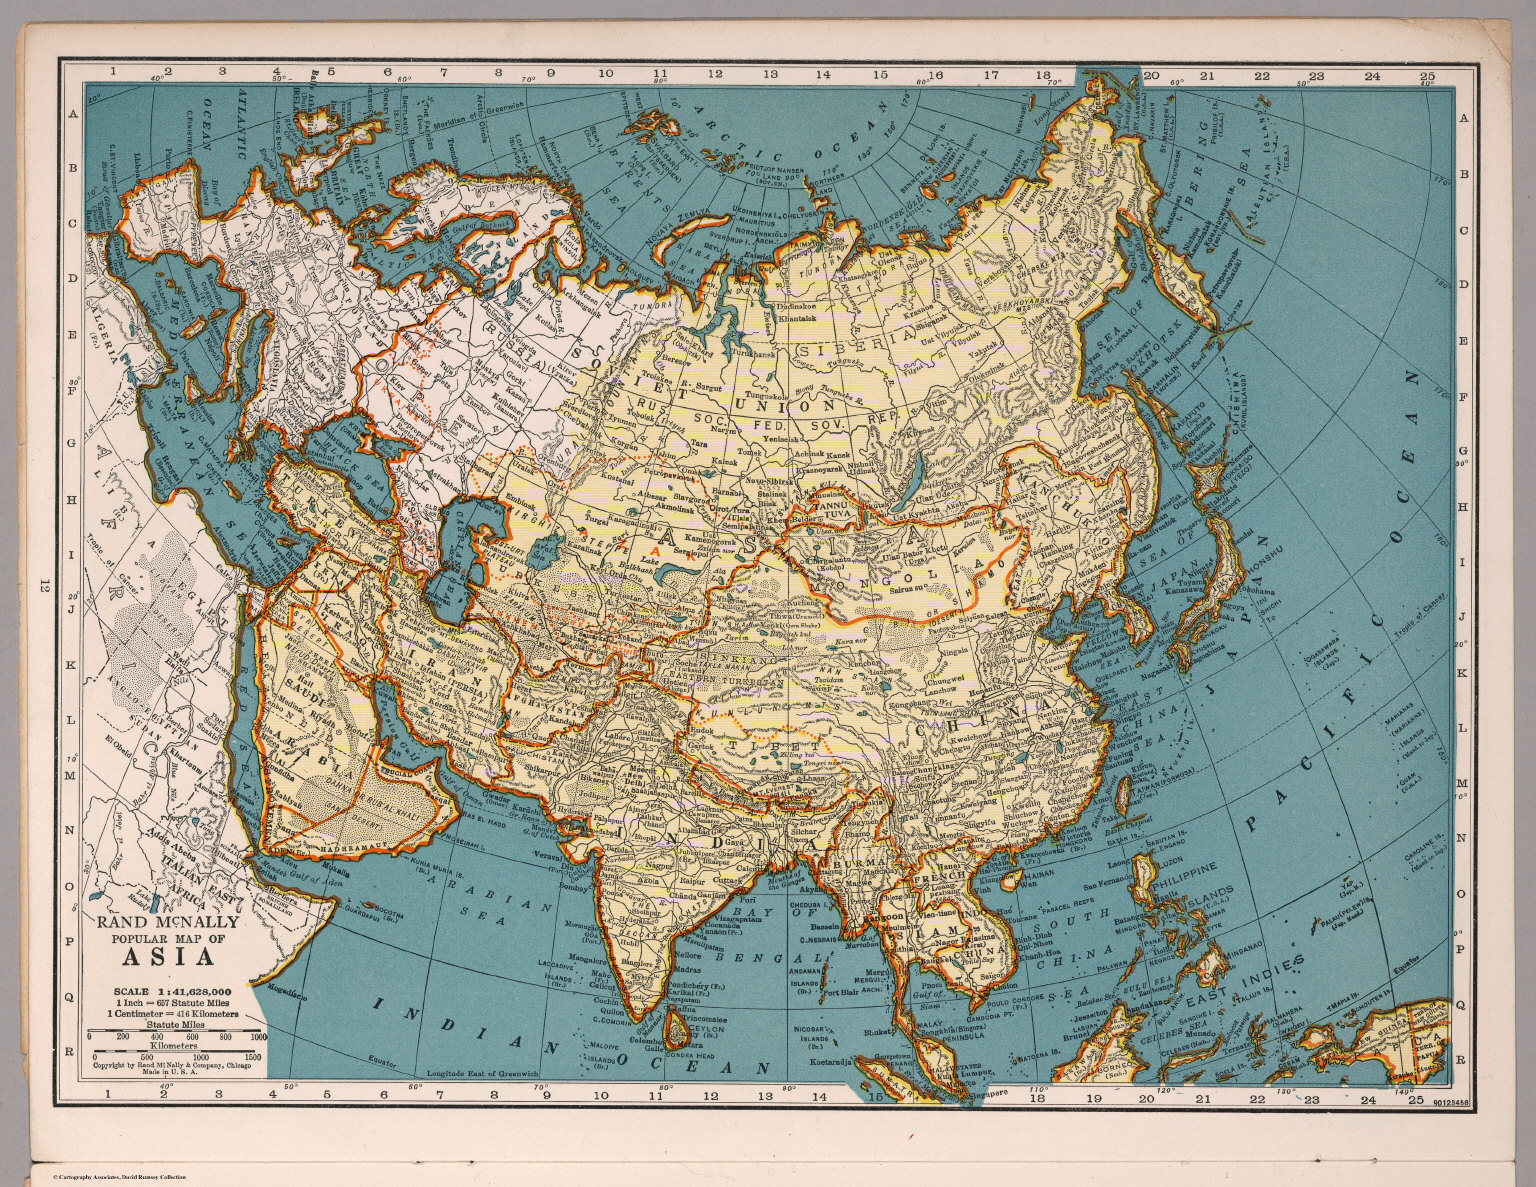 World Atlas Map Of Asia.Rand Mcnally Popular Map Asia David Rumsey Historical Map Collection